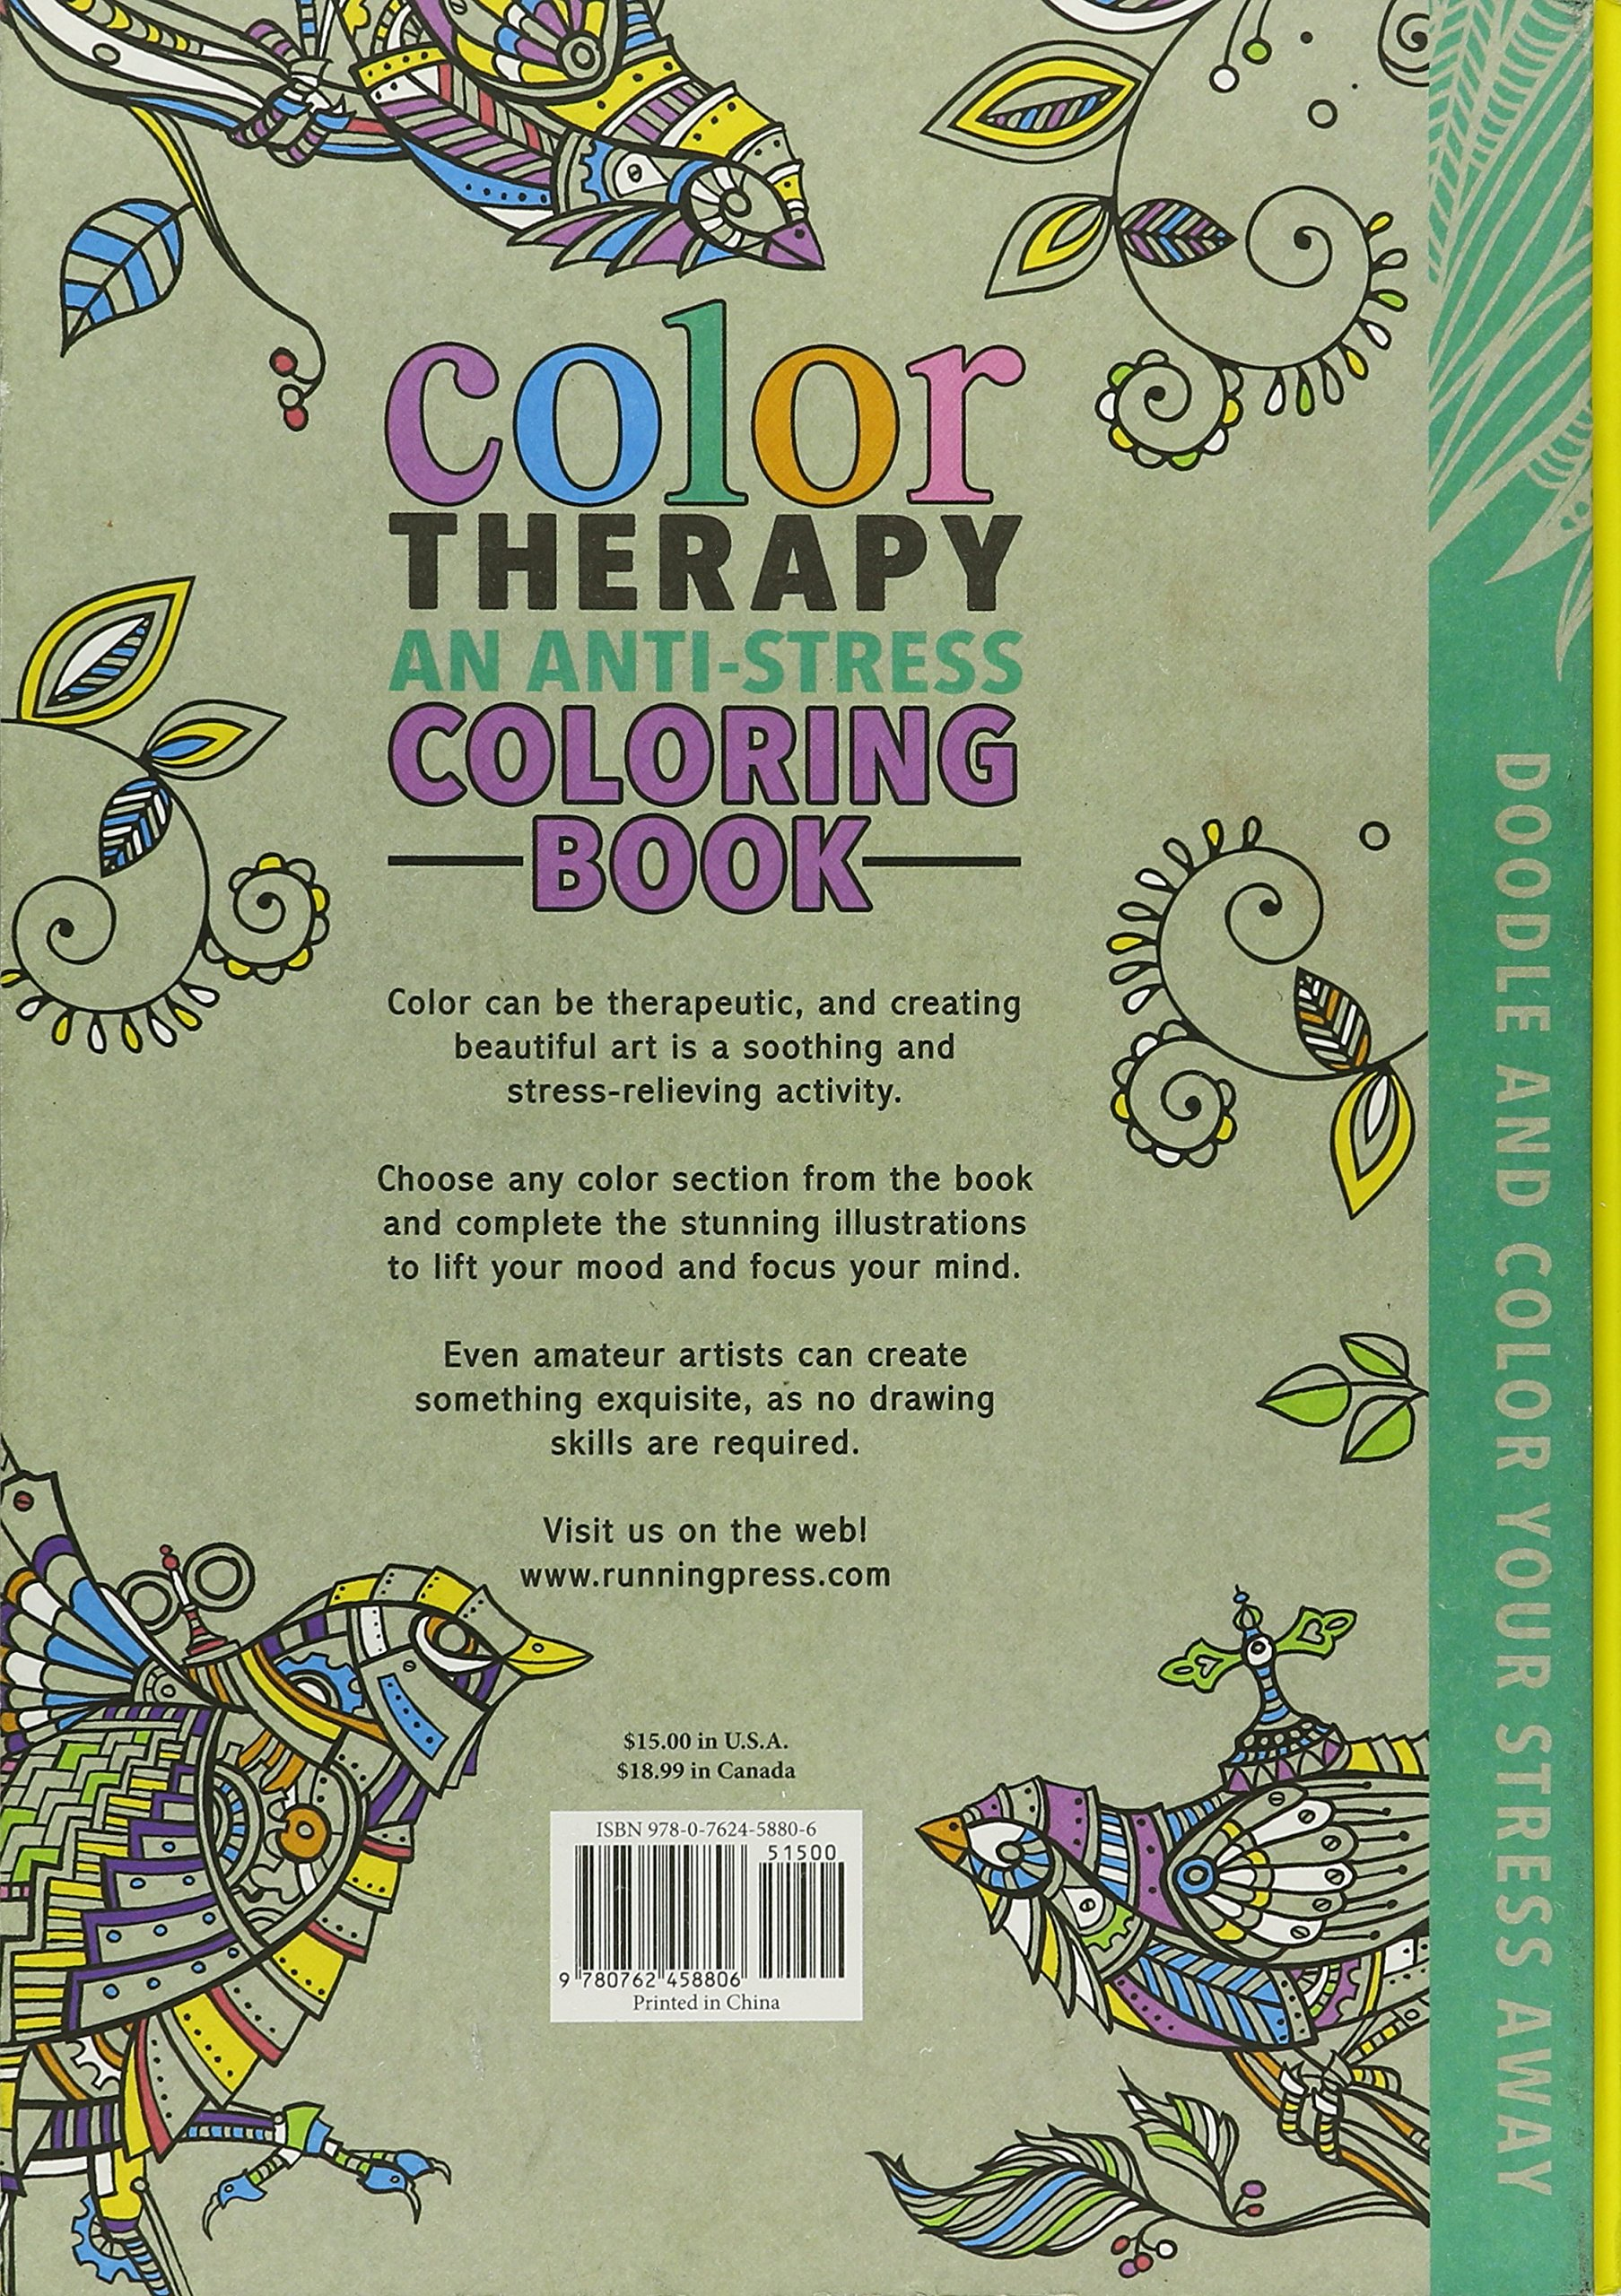 Amazon Color Therapy An Anti Stress Coloring Book Cindy Wilde Laura Kate Chapman Richard Merritt Books